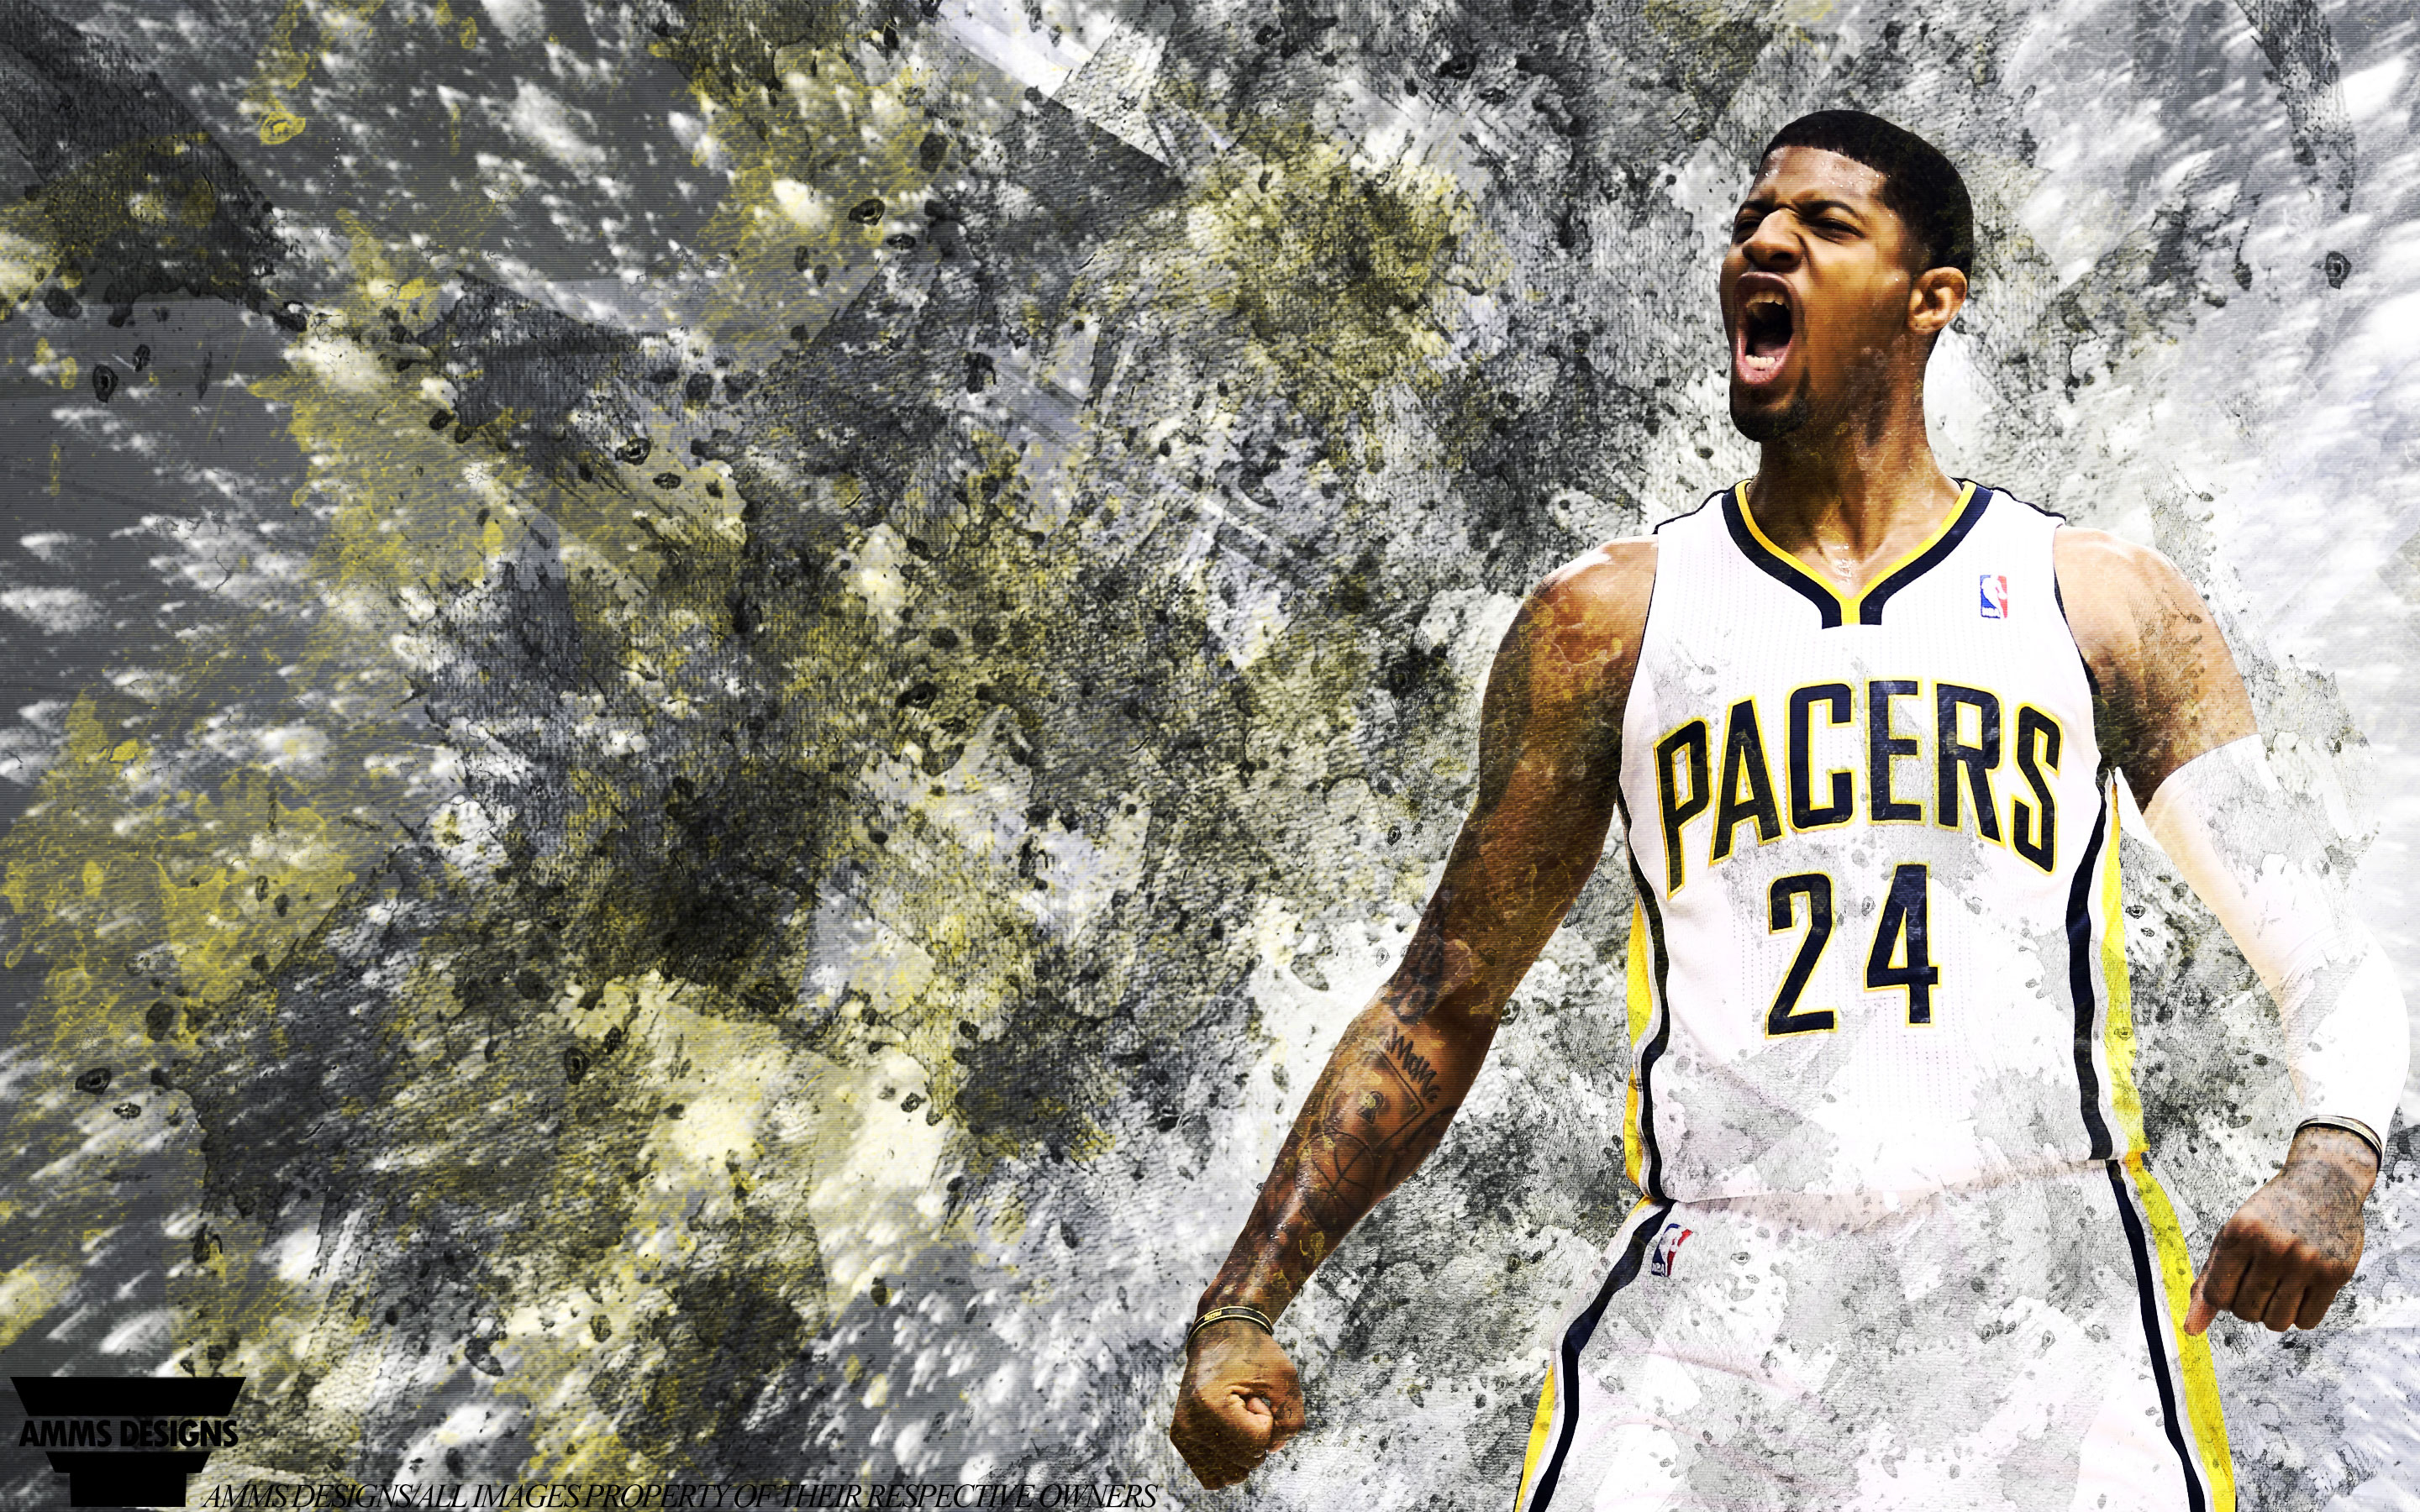 Paul George Pacers 2014 Wallpaper 2880x1800